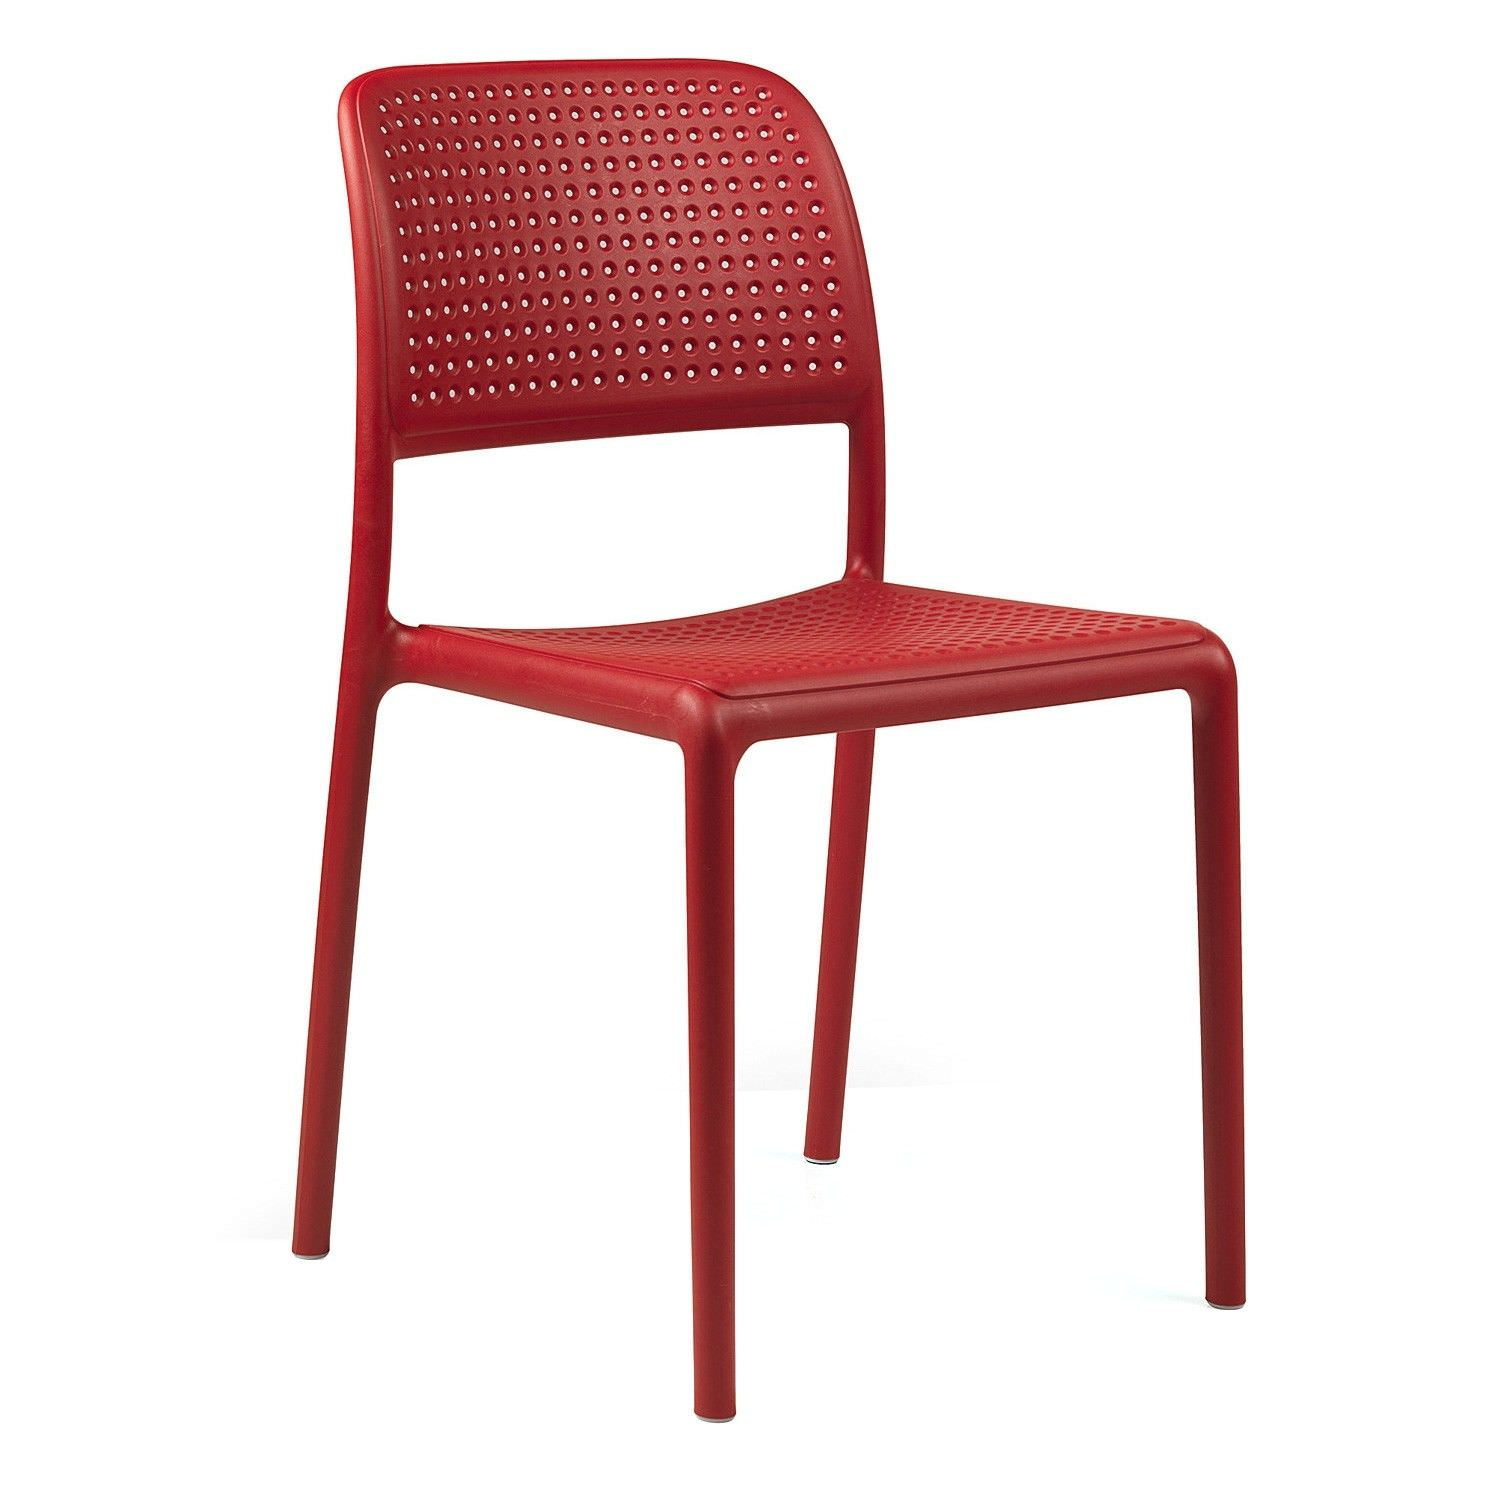 Bora Italian Made Commercial Grade Stackable Indoor/Outdoor Side Chair - Red